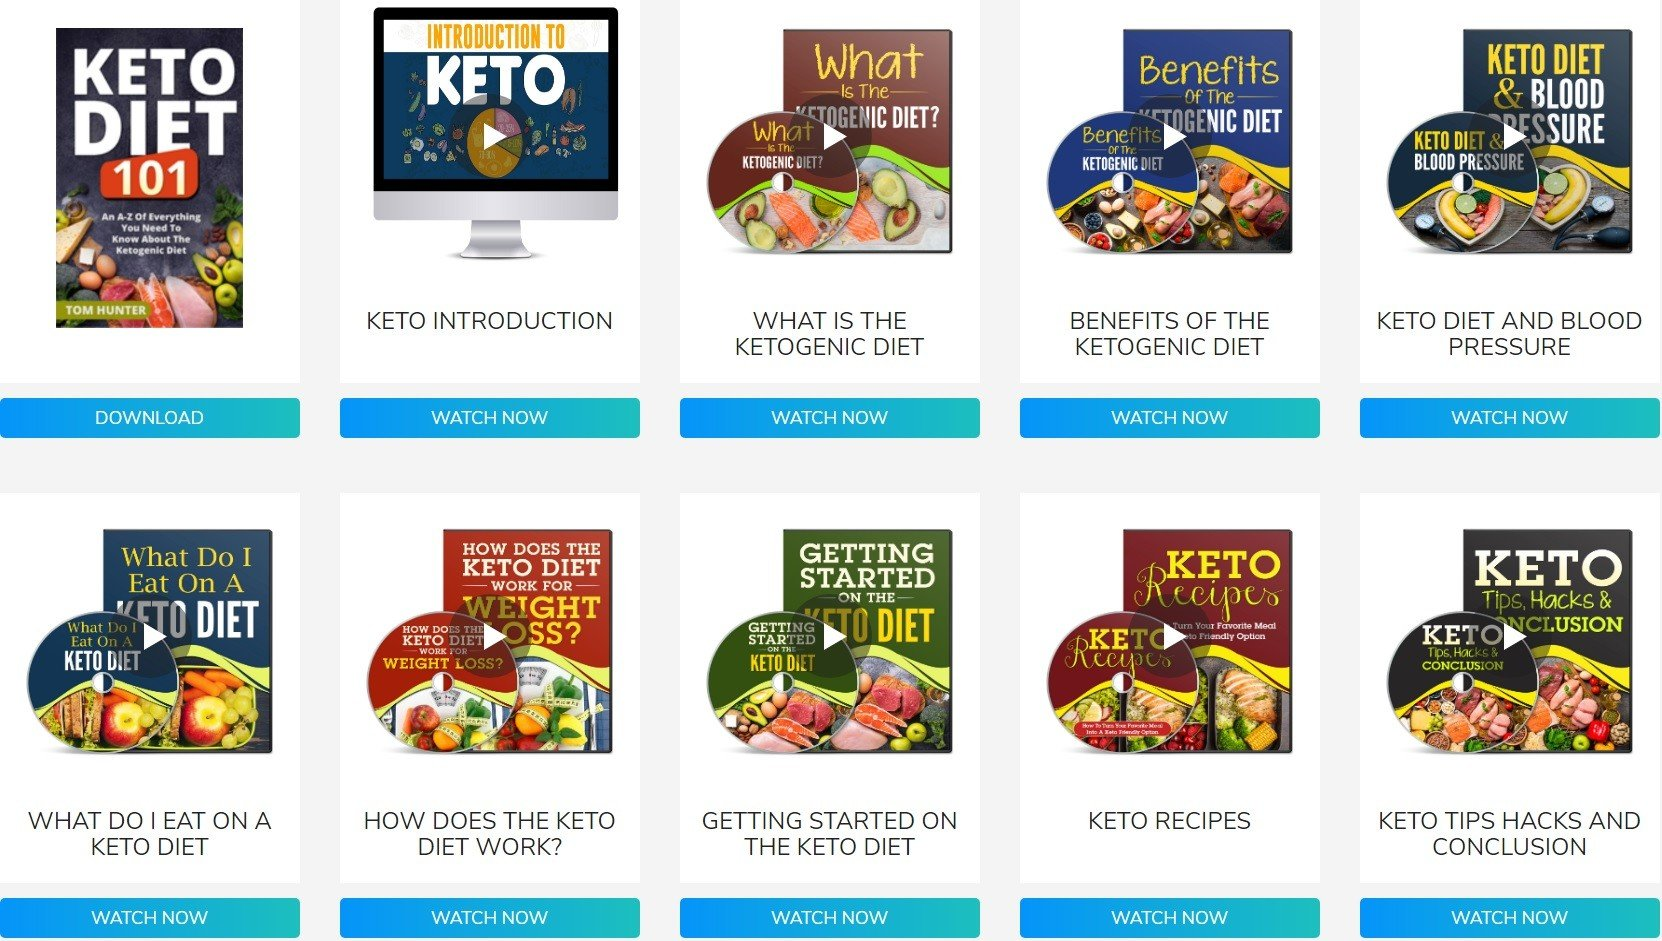 Custom Keto Diet Support Warranty Claim